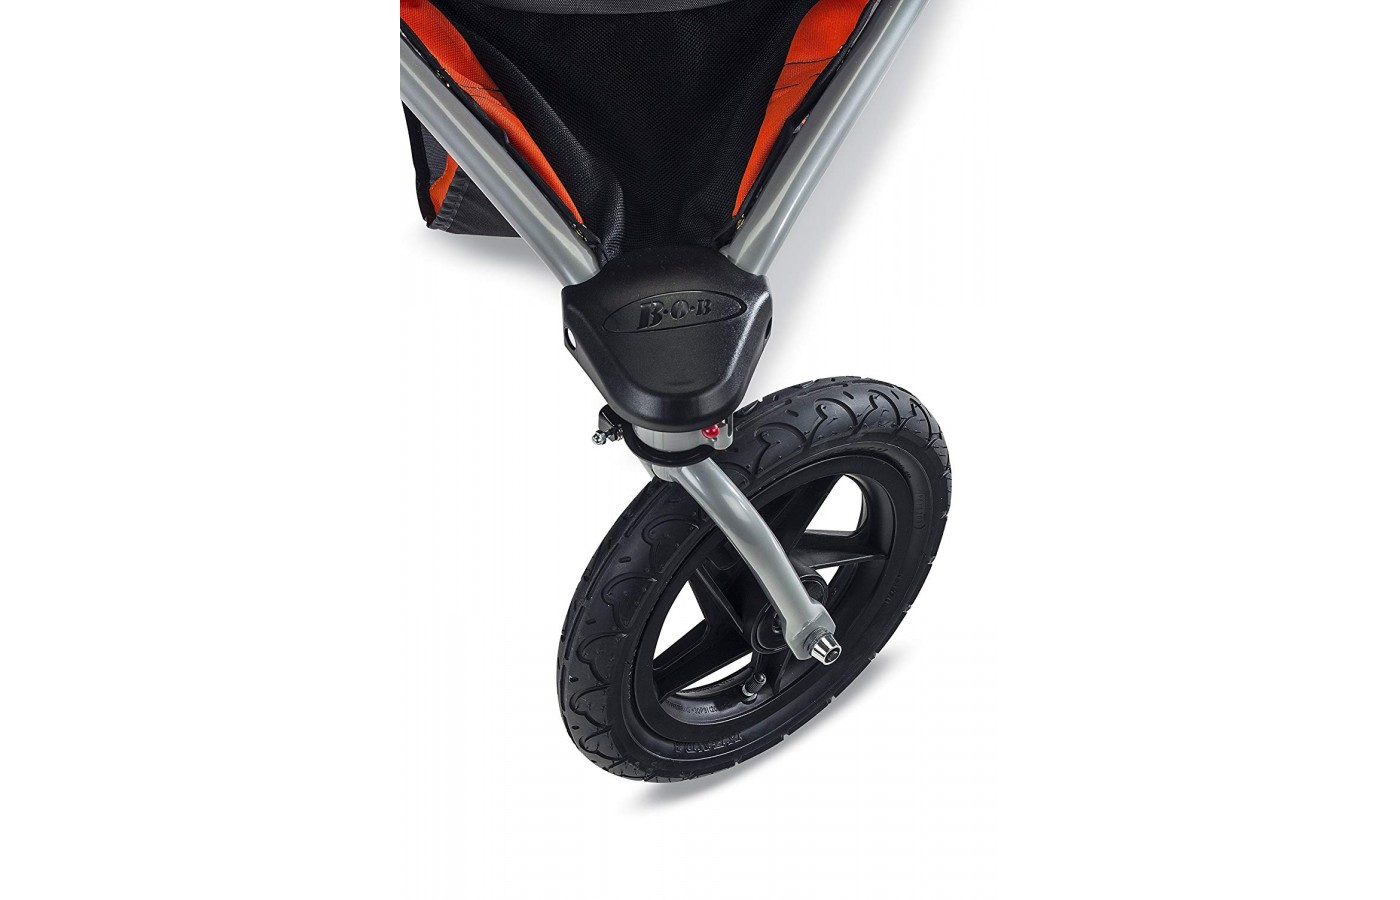 Bob Revolution Flex Duallie wheel